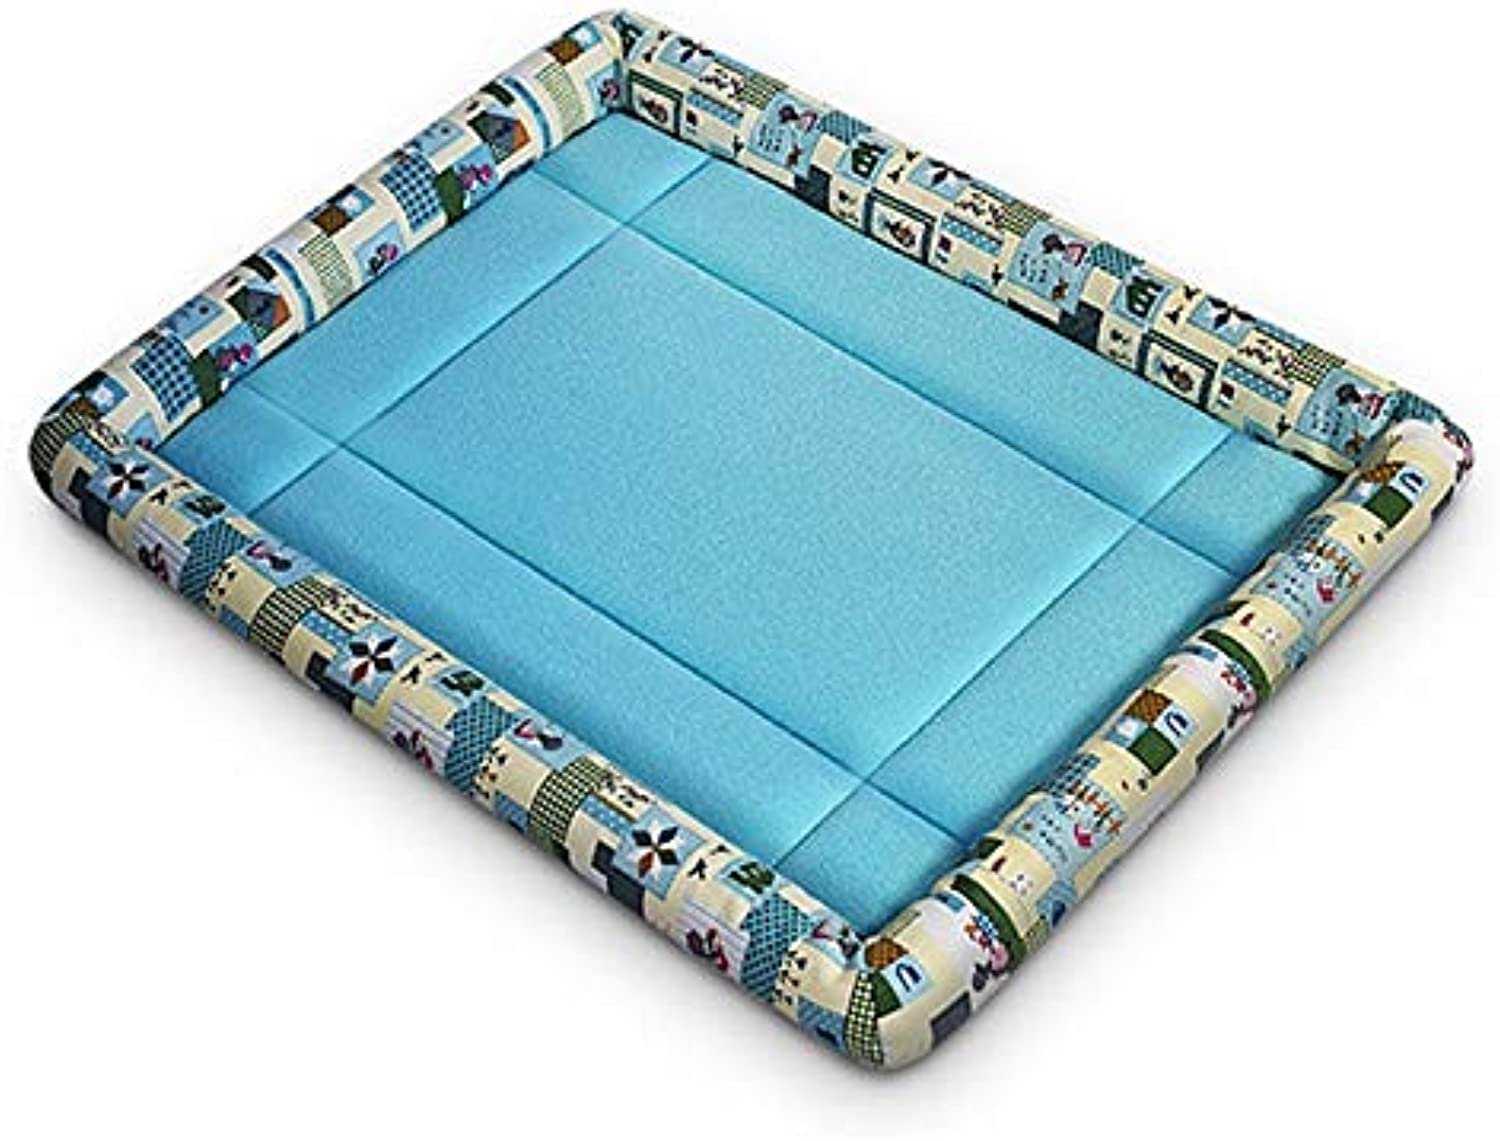 RMJAI Kennel Pad Crate Pad for Pets Teddy golden Retriever Dog Nest Suitable for Medium and Large Dogs and Cats Small Animal Beds (color   B, Size   XL)